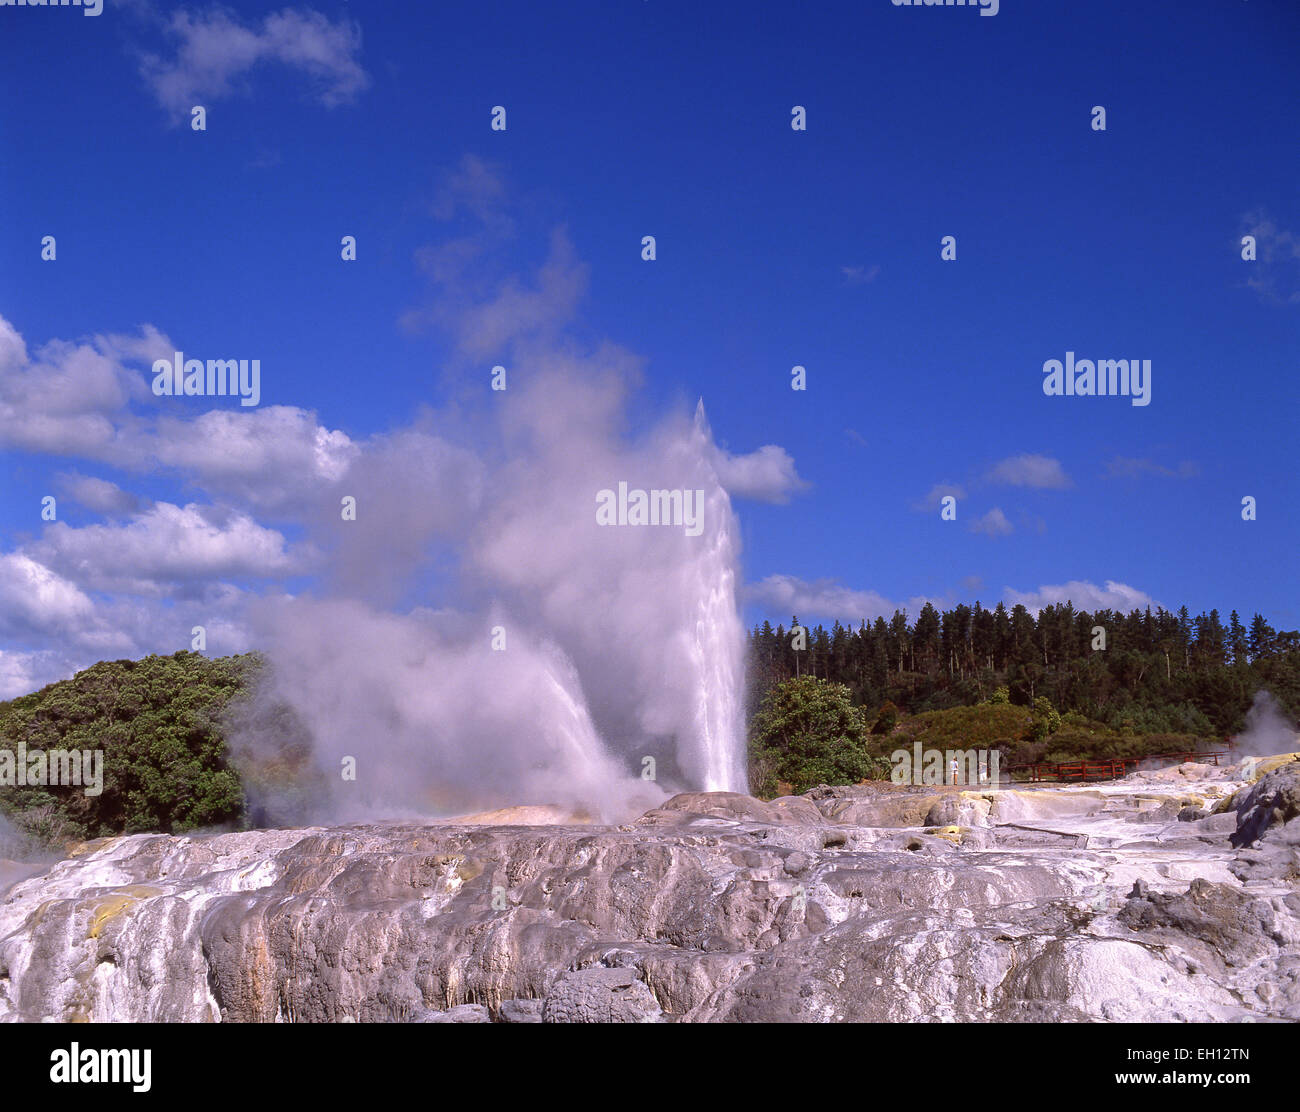 Prince of Wales Feathers geyser erupting, Te Puia Thermal Valley, Rotorua, Bay of Plenty Region, North Island, New - Stock Image